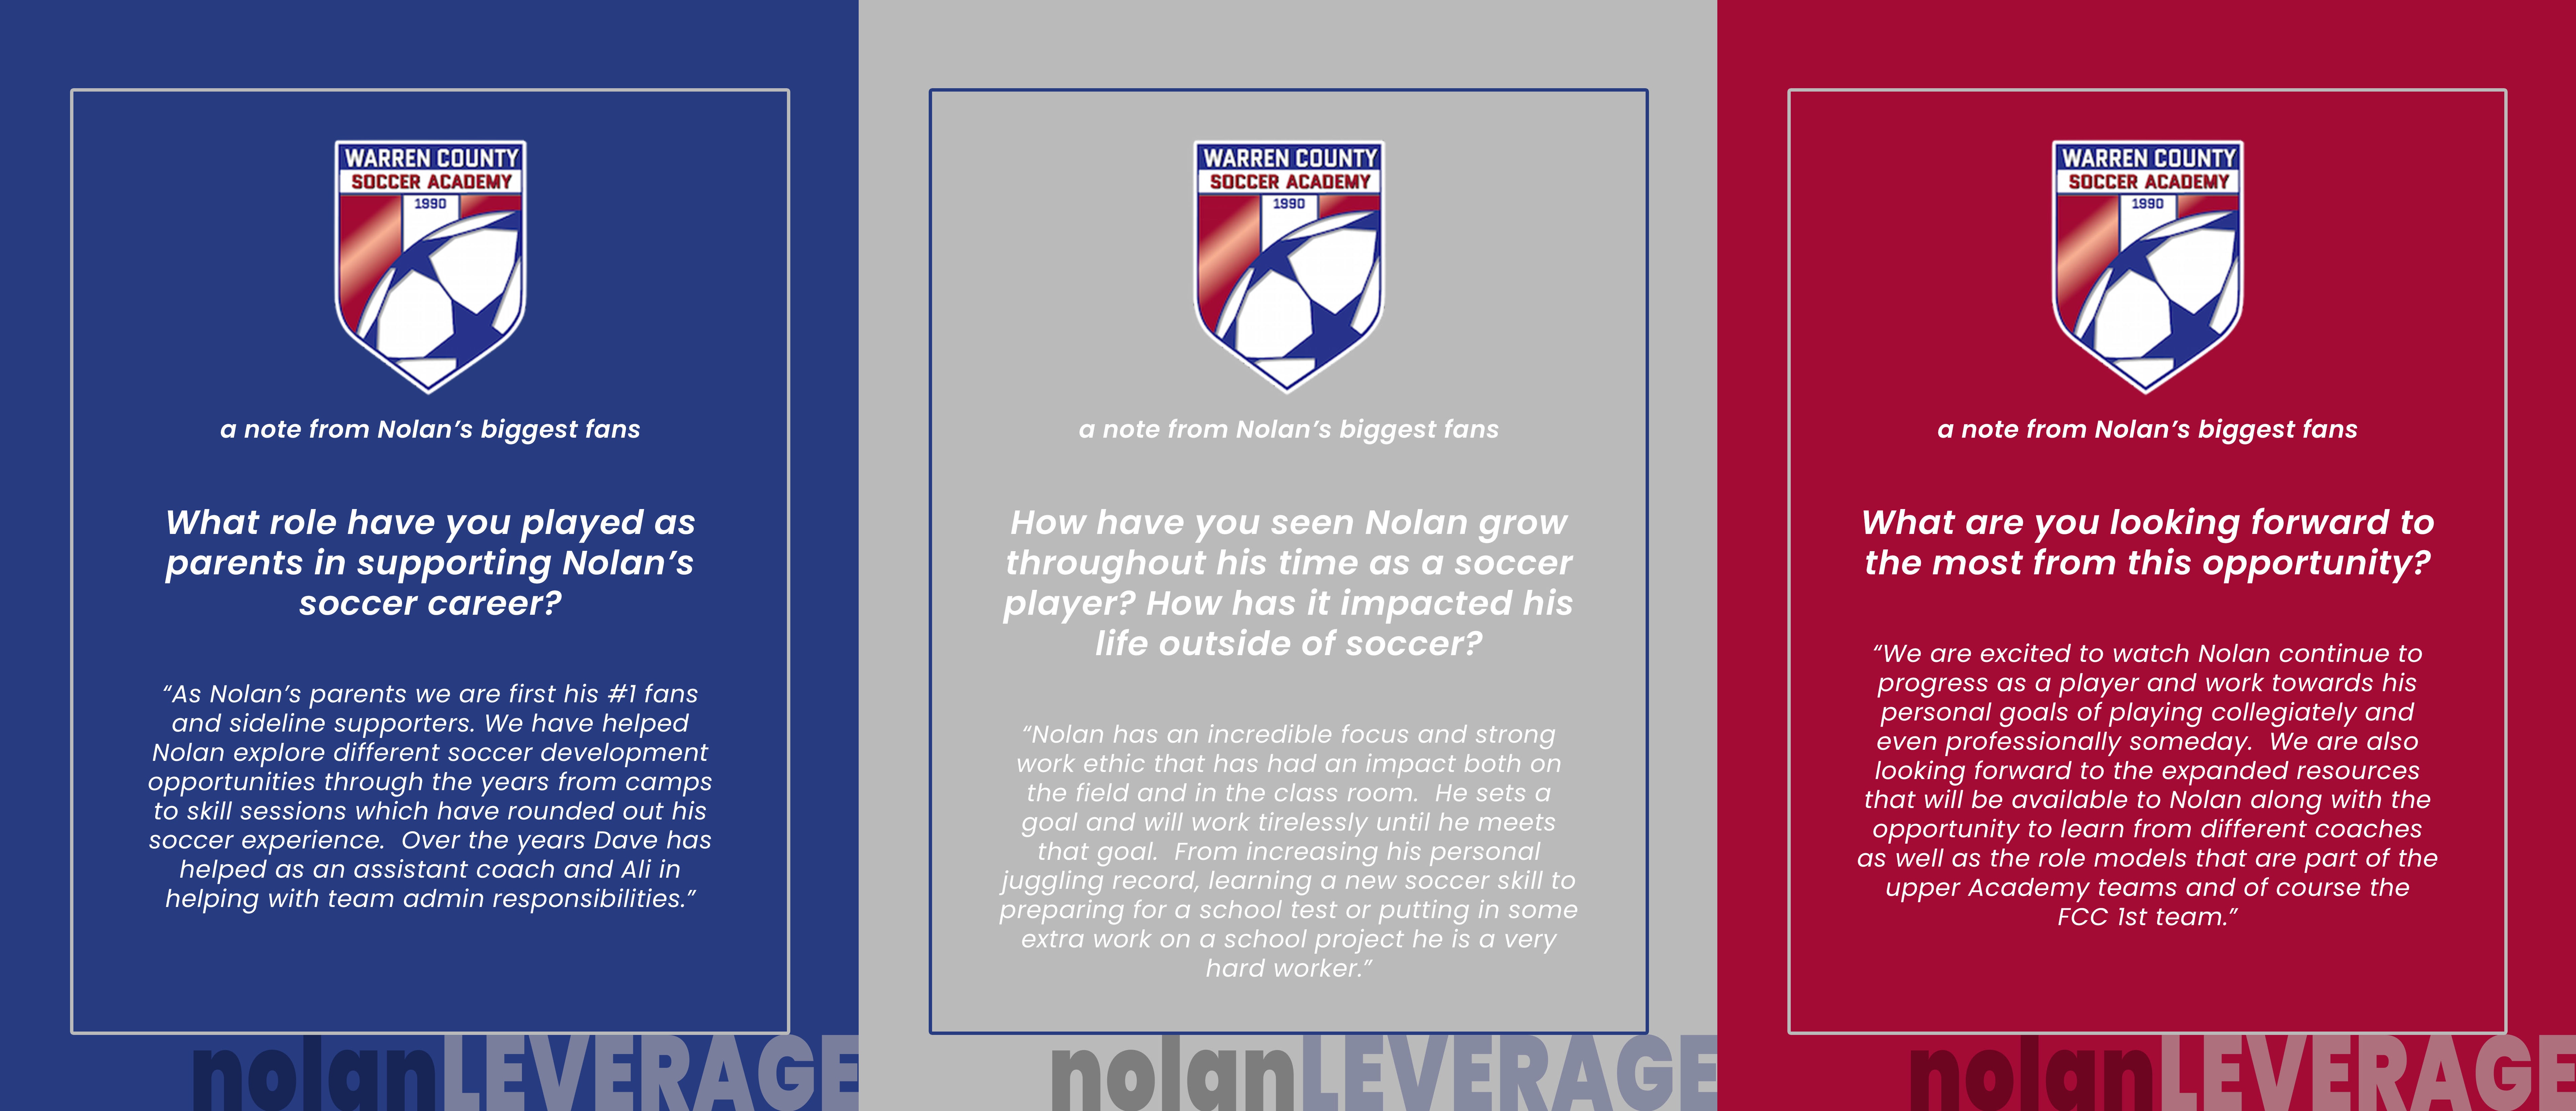 NOLAN LEVERAGE: From WCSA to FCC